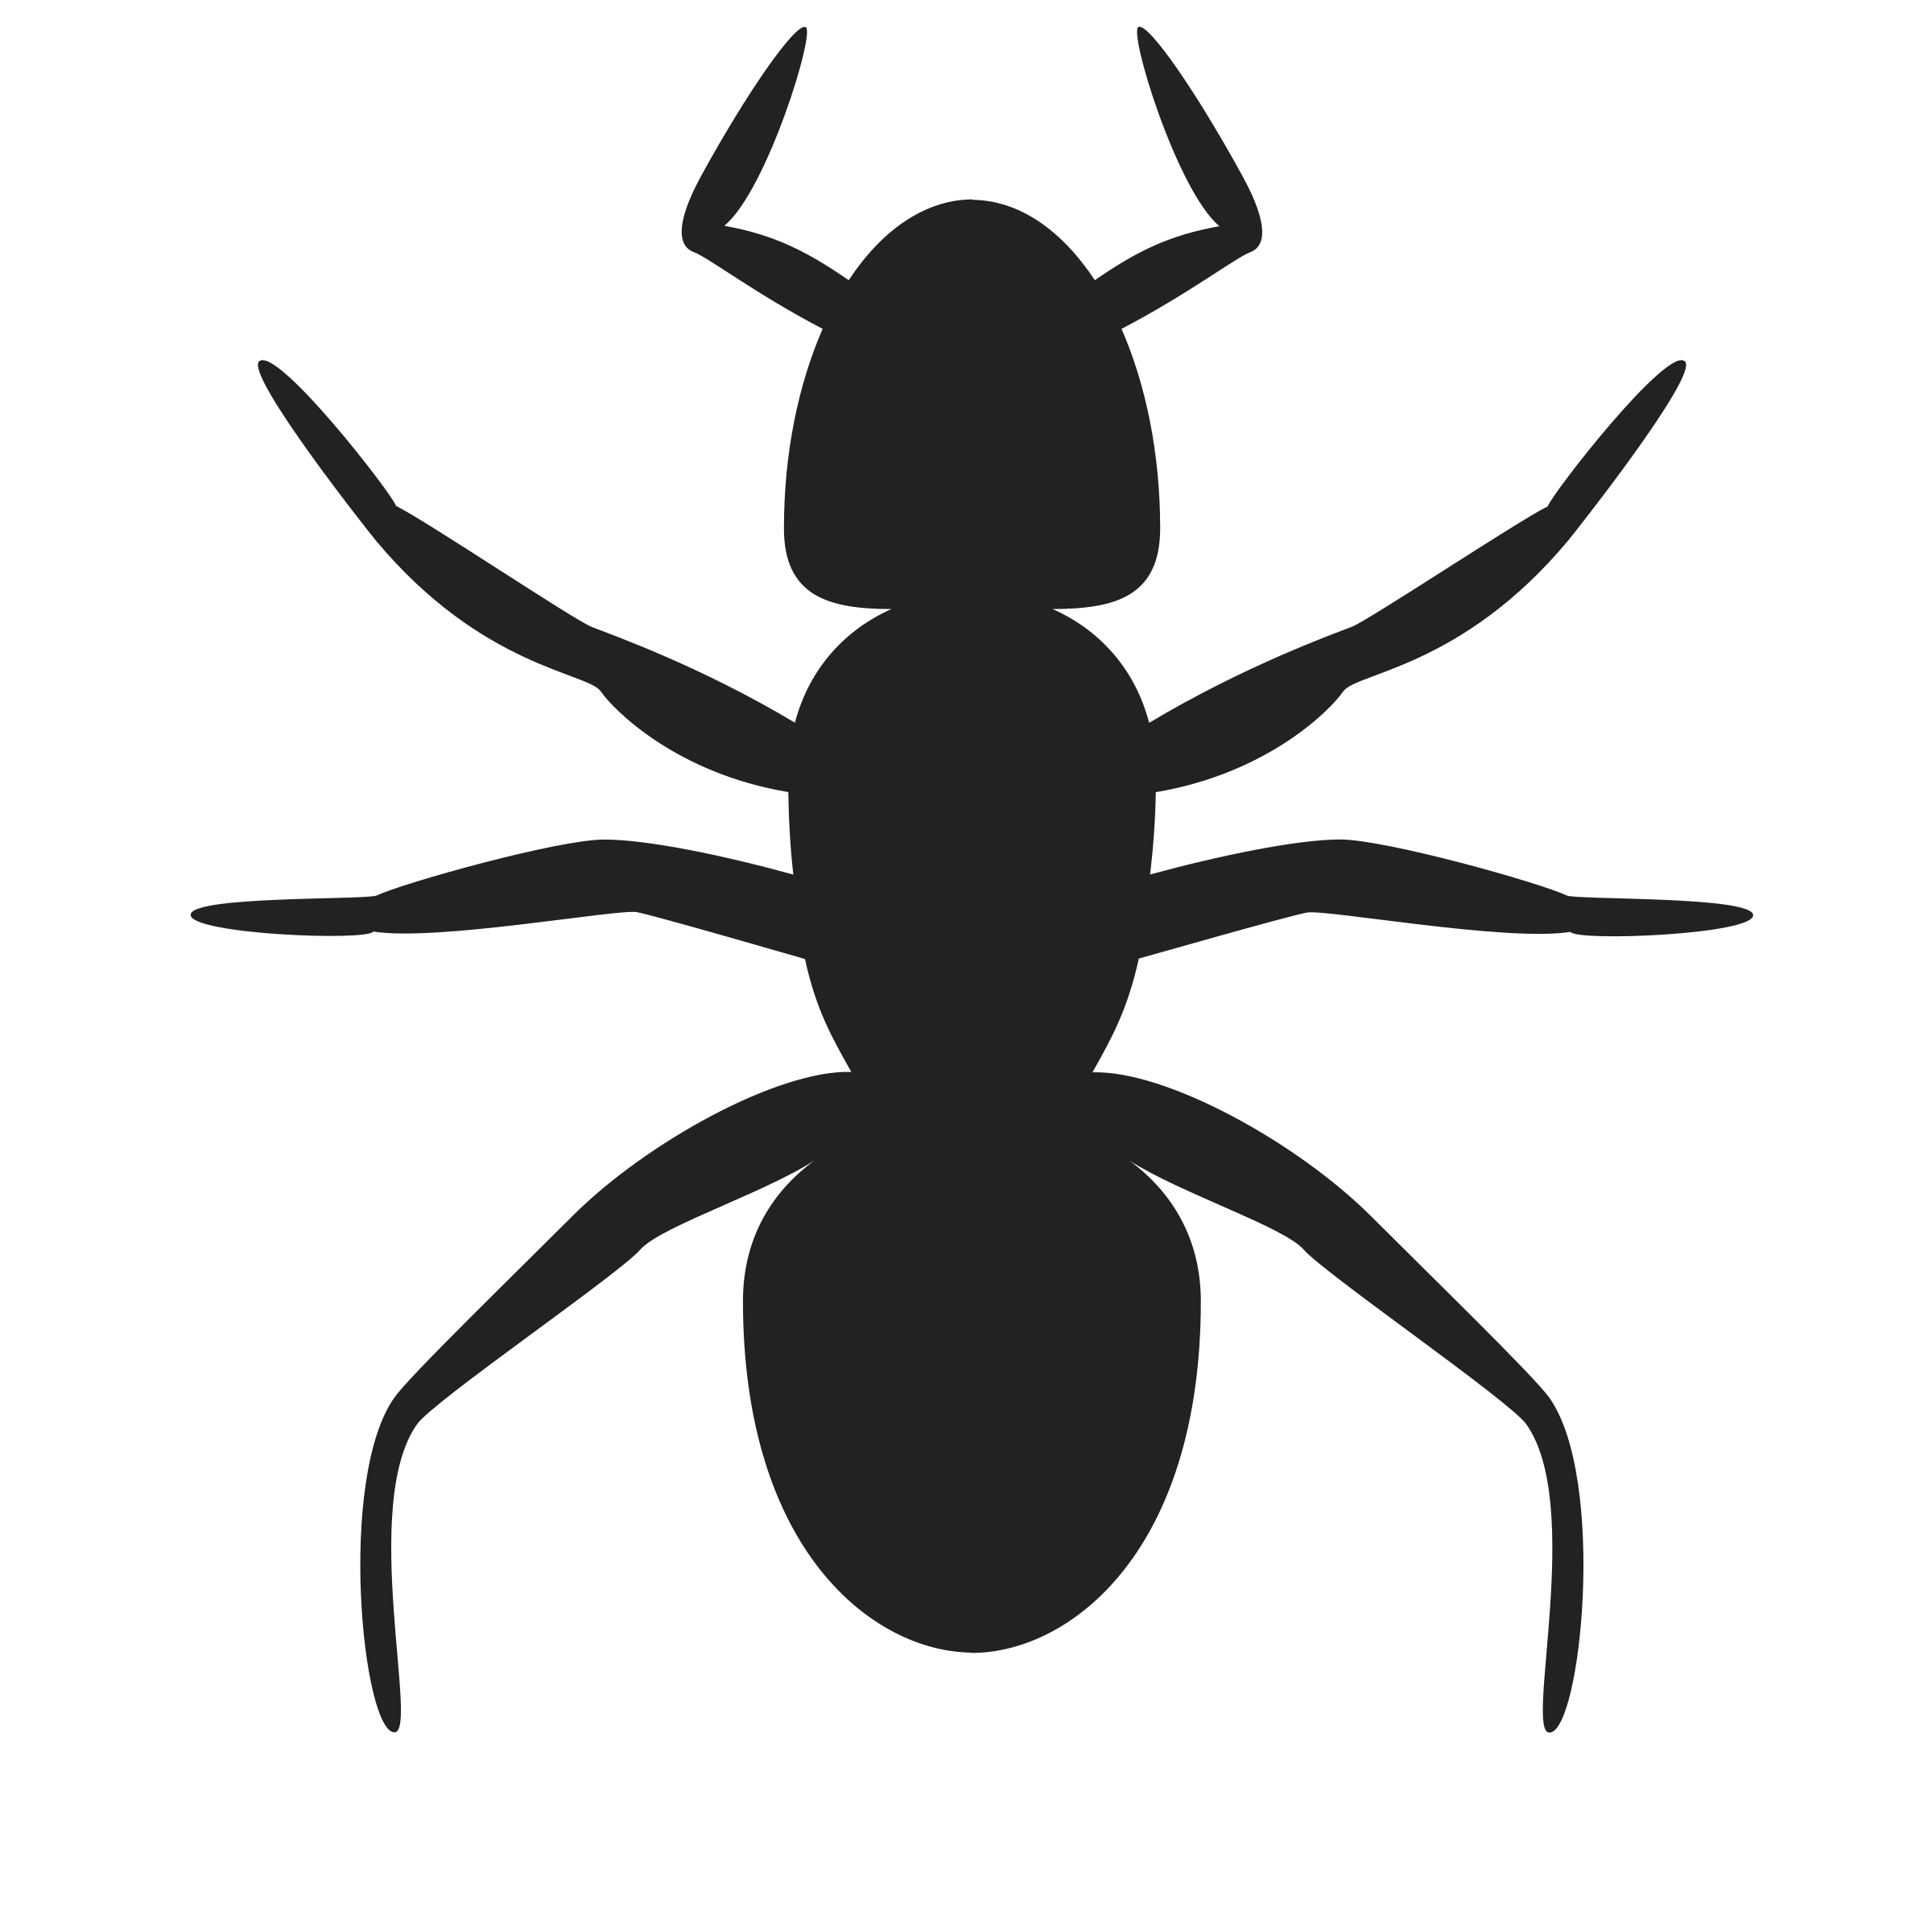 Ant drawing png. Icon icons free and